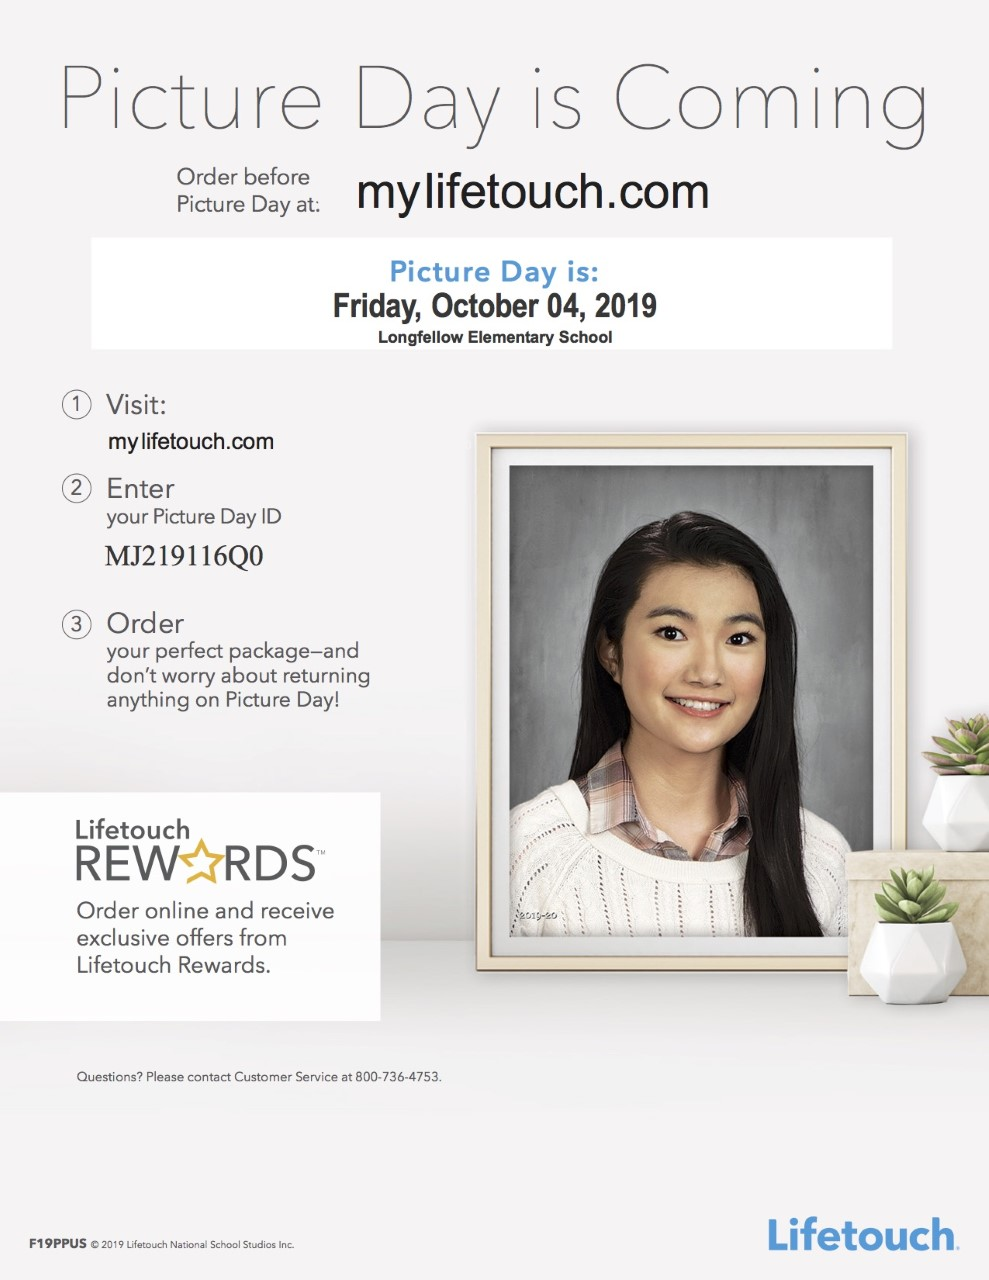 Picture day is Friday, October 4, 2019.  To order your child's pictures online, go to mylifetouch.com and enter ID number Mj219116Q0